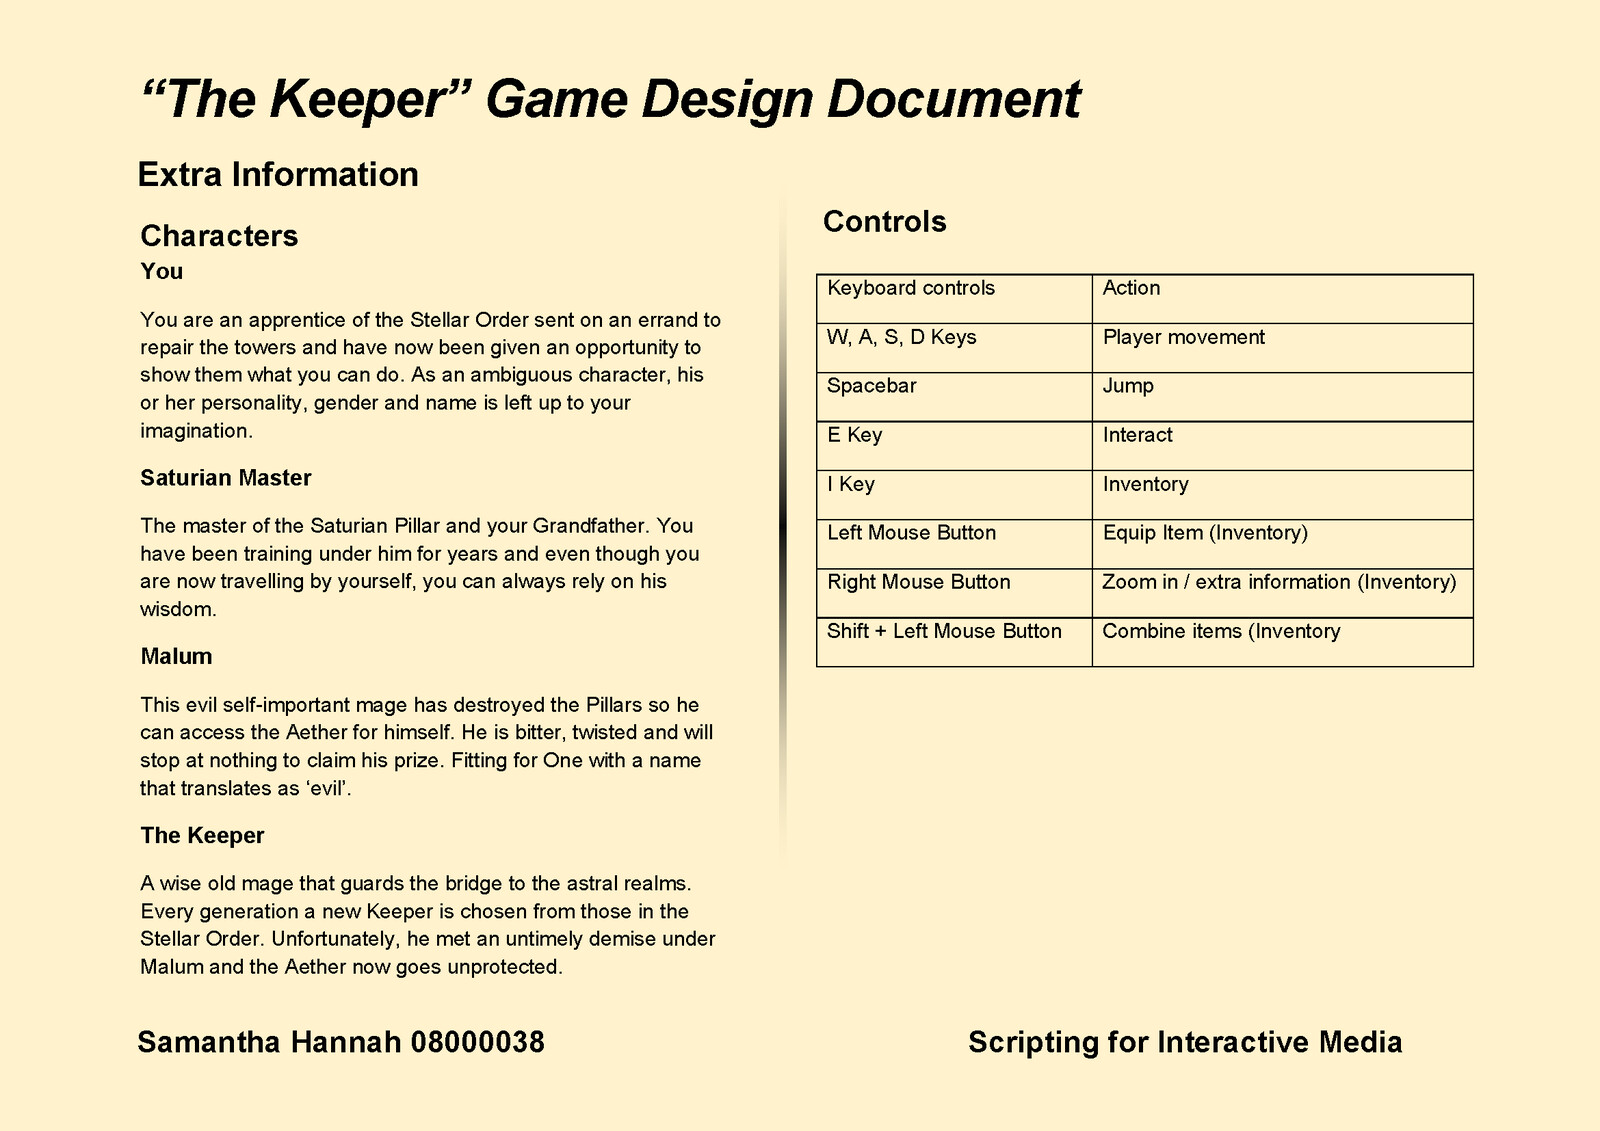 Game Design Document Page 10